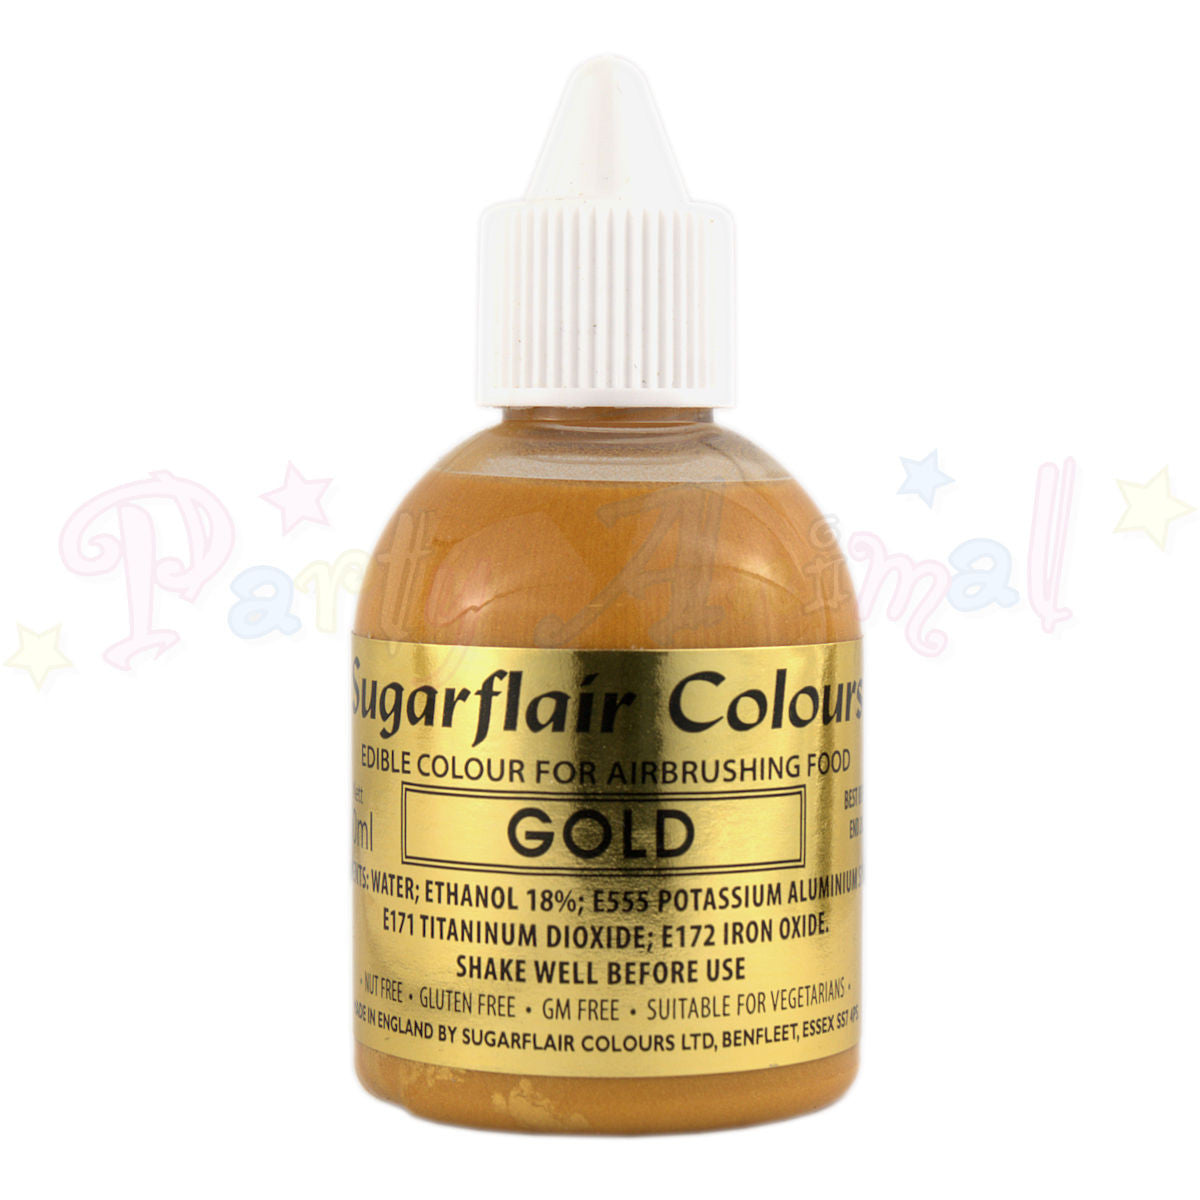 Sugarflair Airbrush Colours for Cake Decoration - Gold